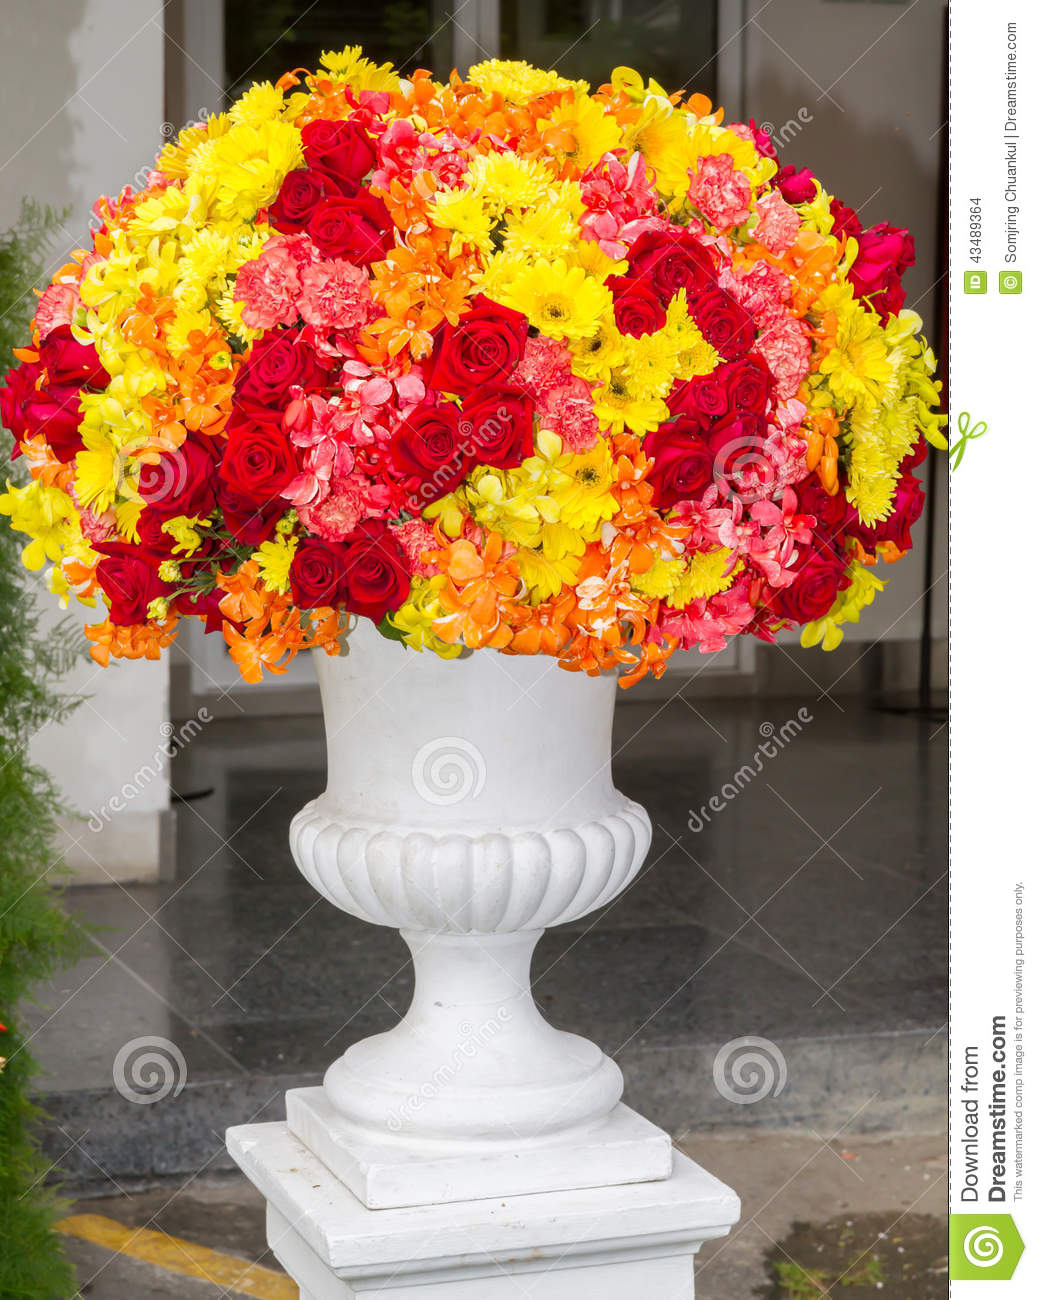 Large flower vase is based on white cement stock photo image of large flower vase is based on white cement reviewsmspy